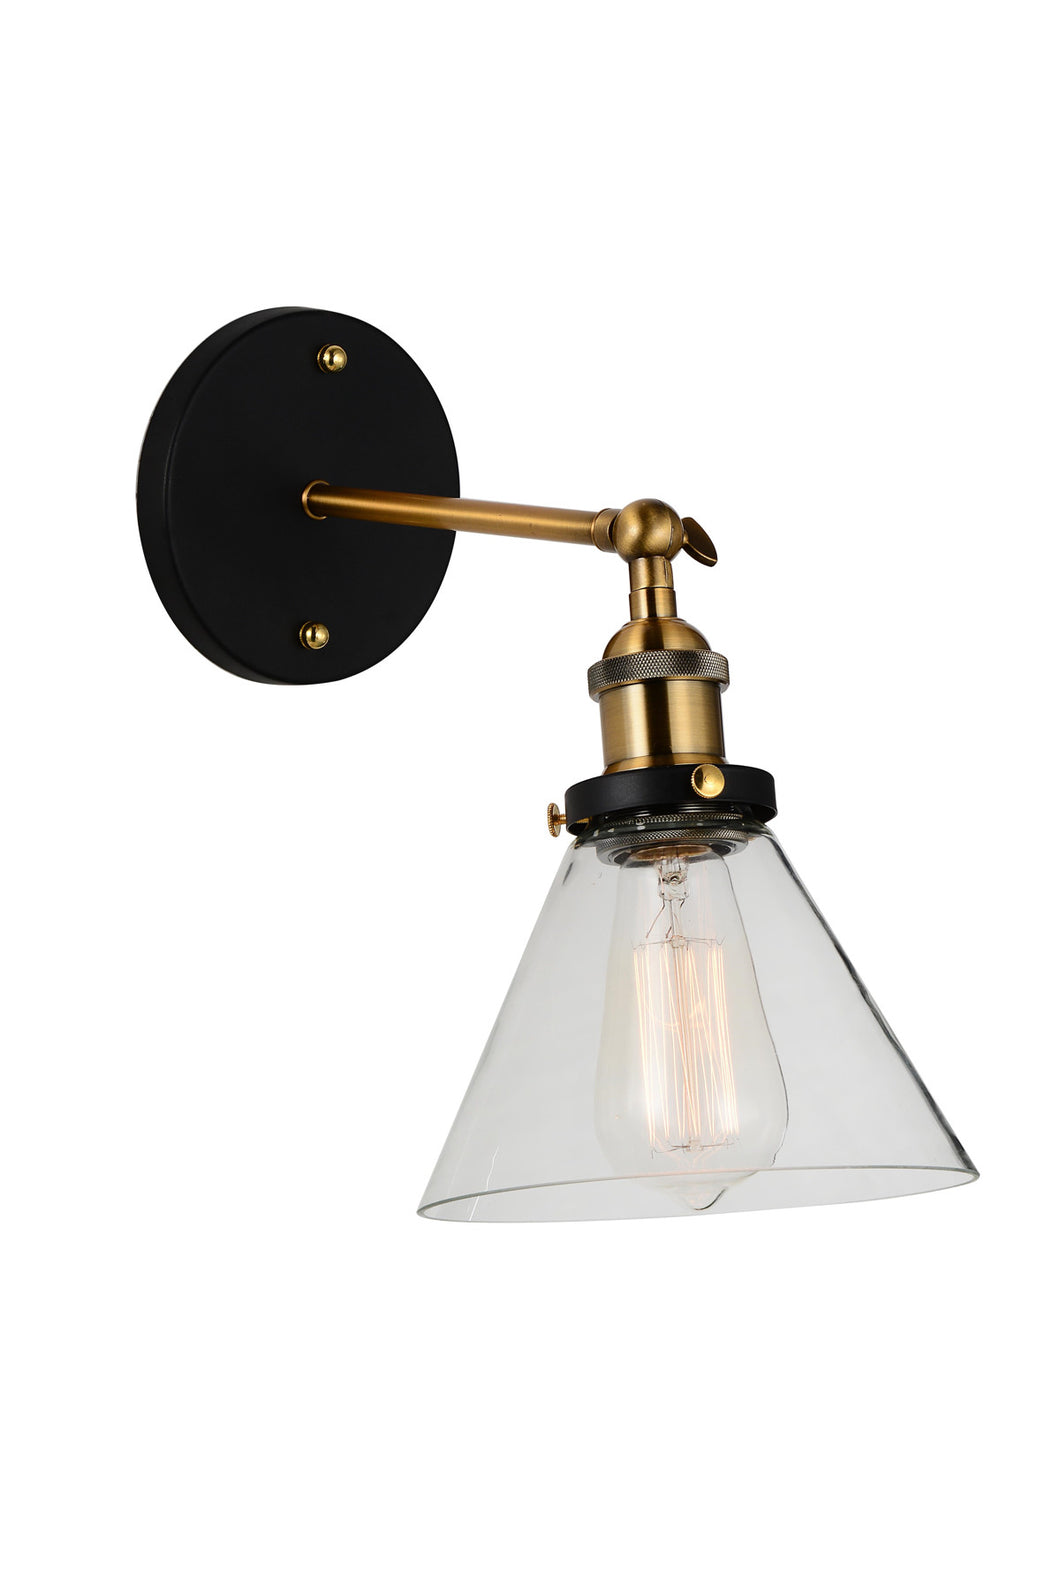 1 Light Wall Sconce with Black & Gold Brass finish